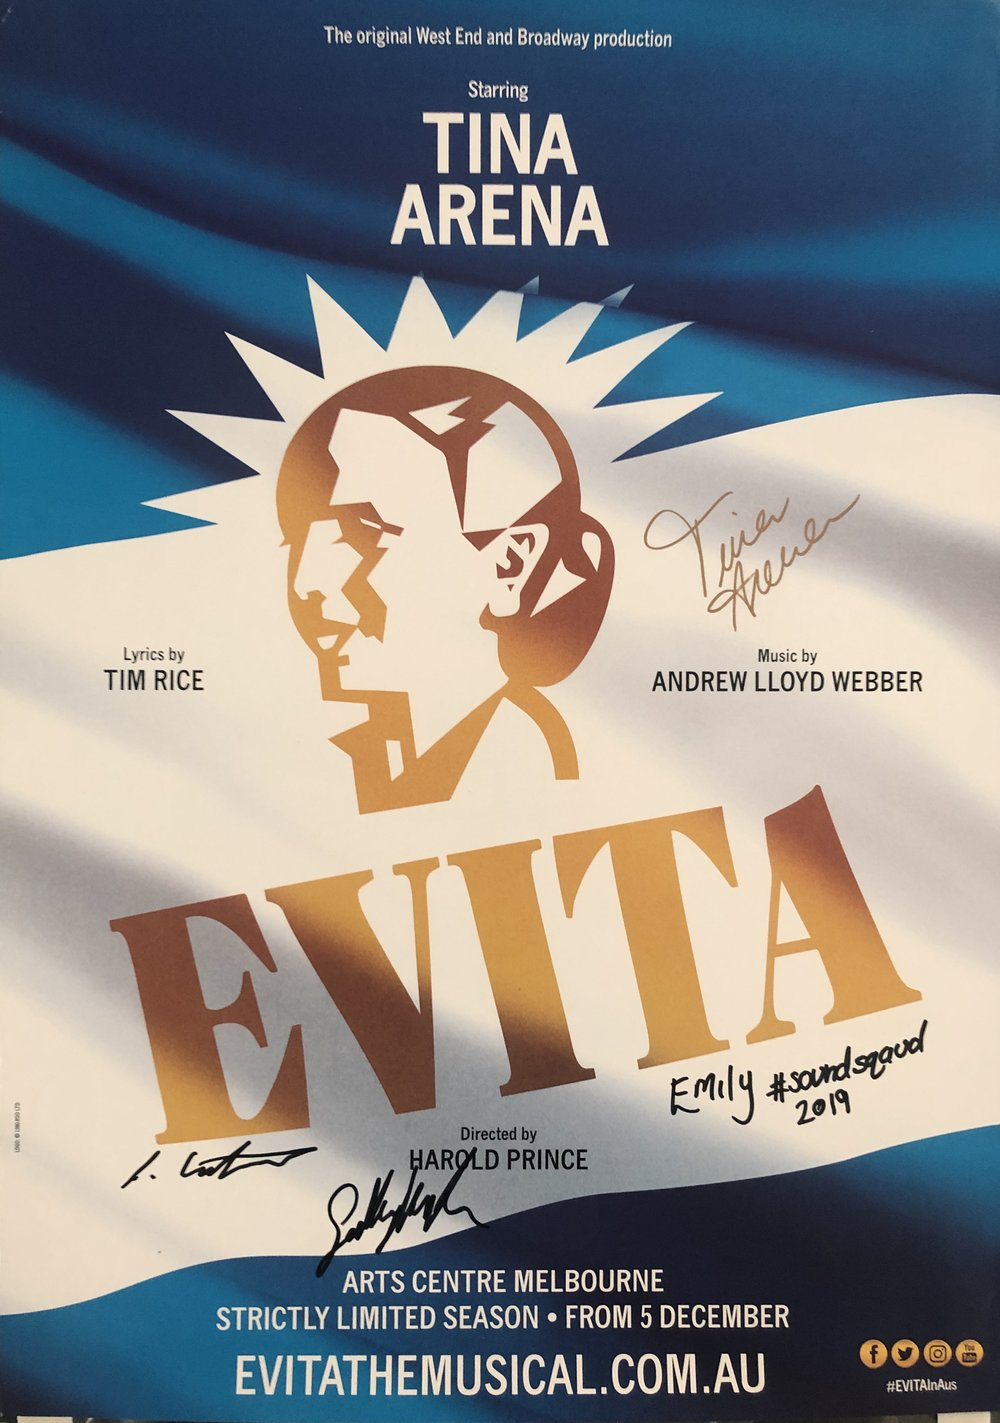 Evita broke records for The Arts Centre Melbourne, becoming the longest running and highest grossing production in their history